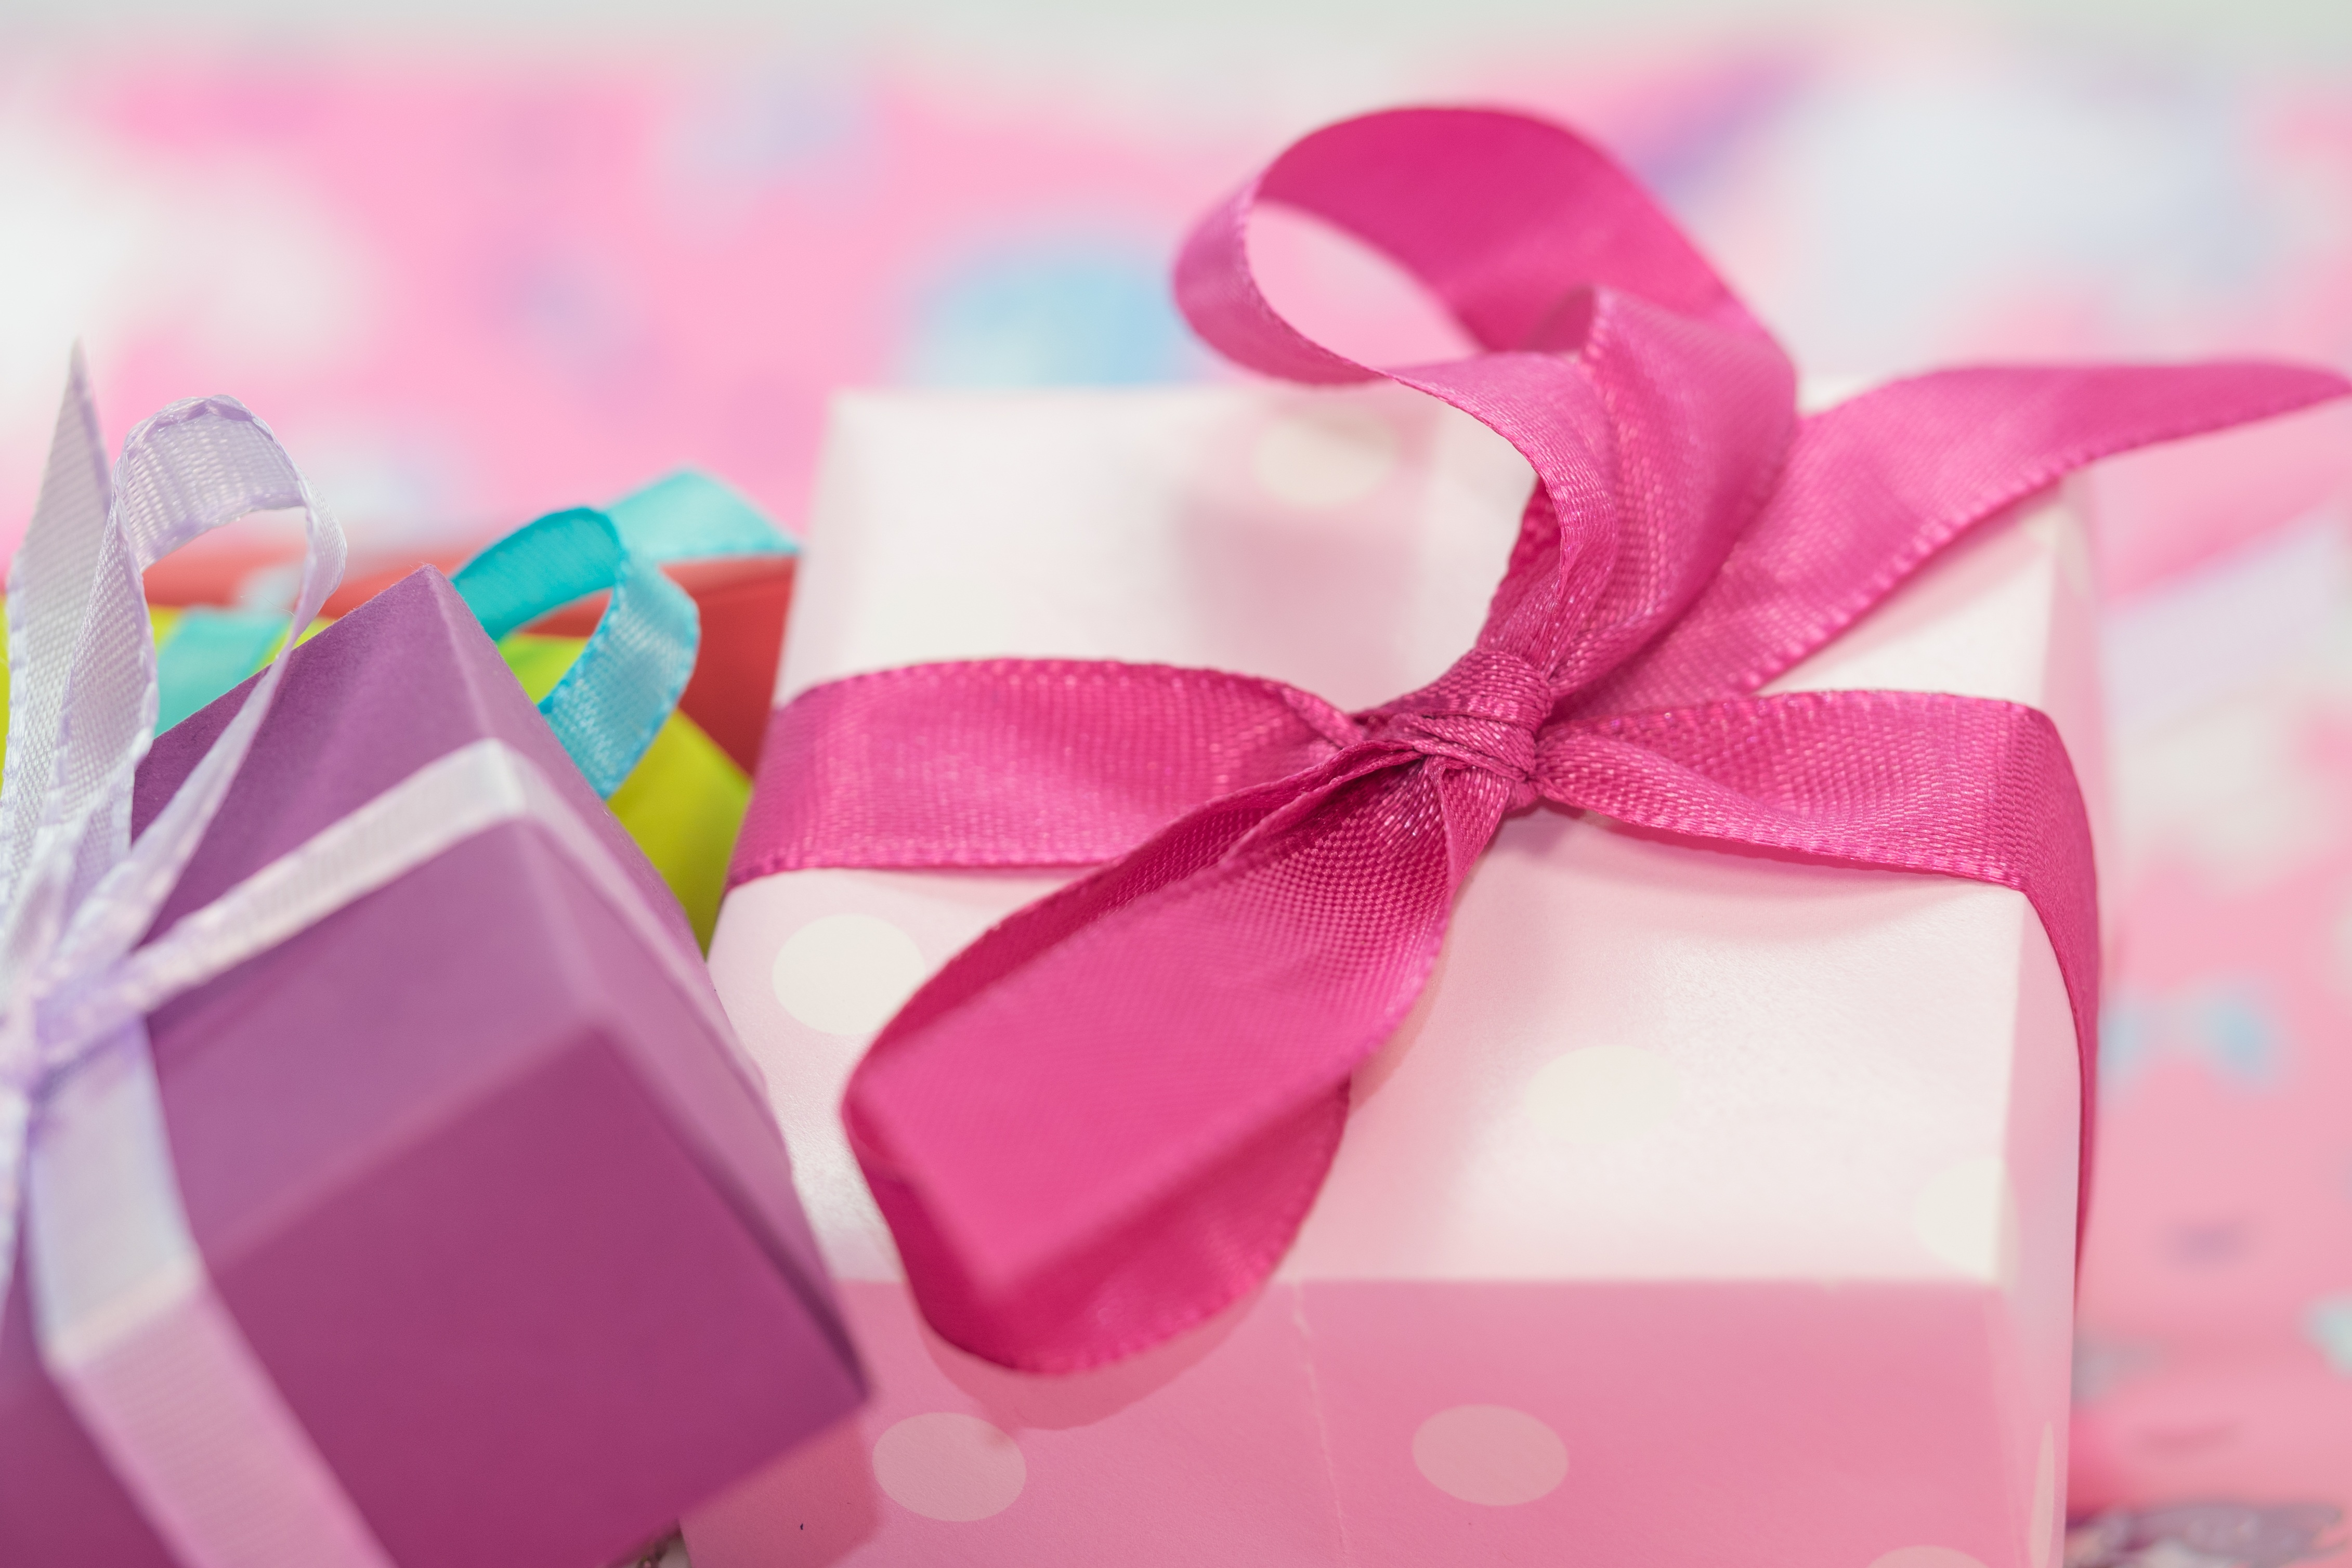 Free stock photos of gift packaging pexels white and purple gift box with pink and white ribbon negle Image collections